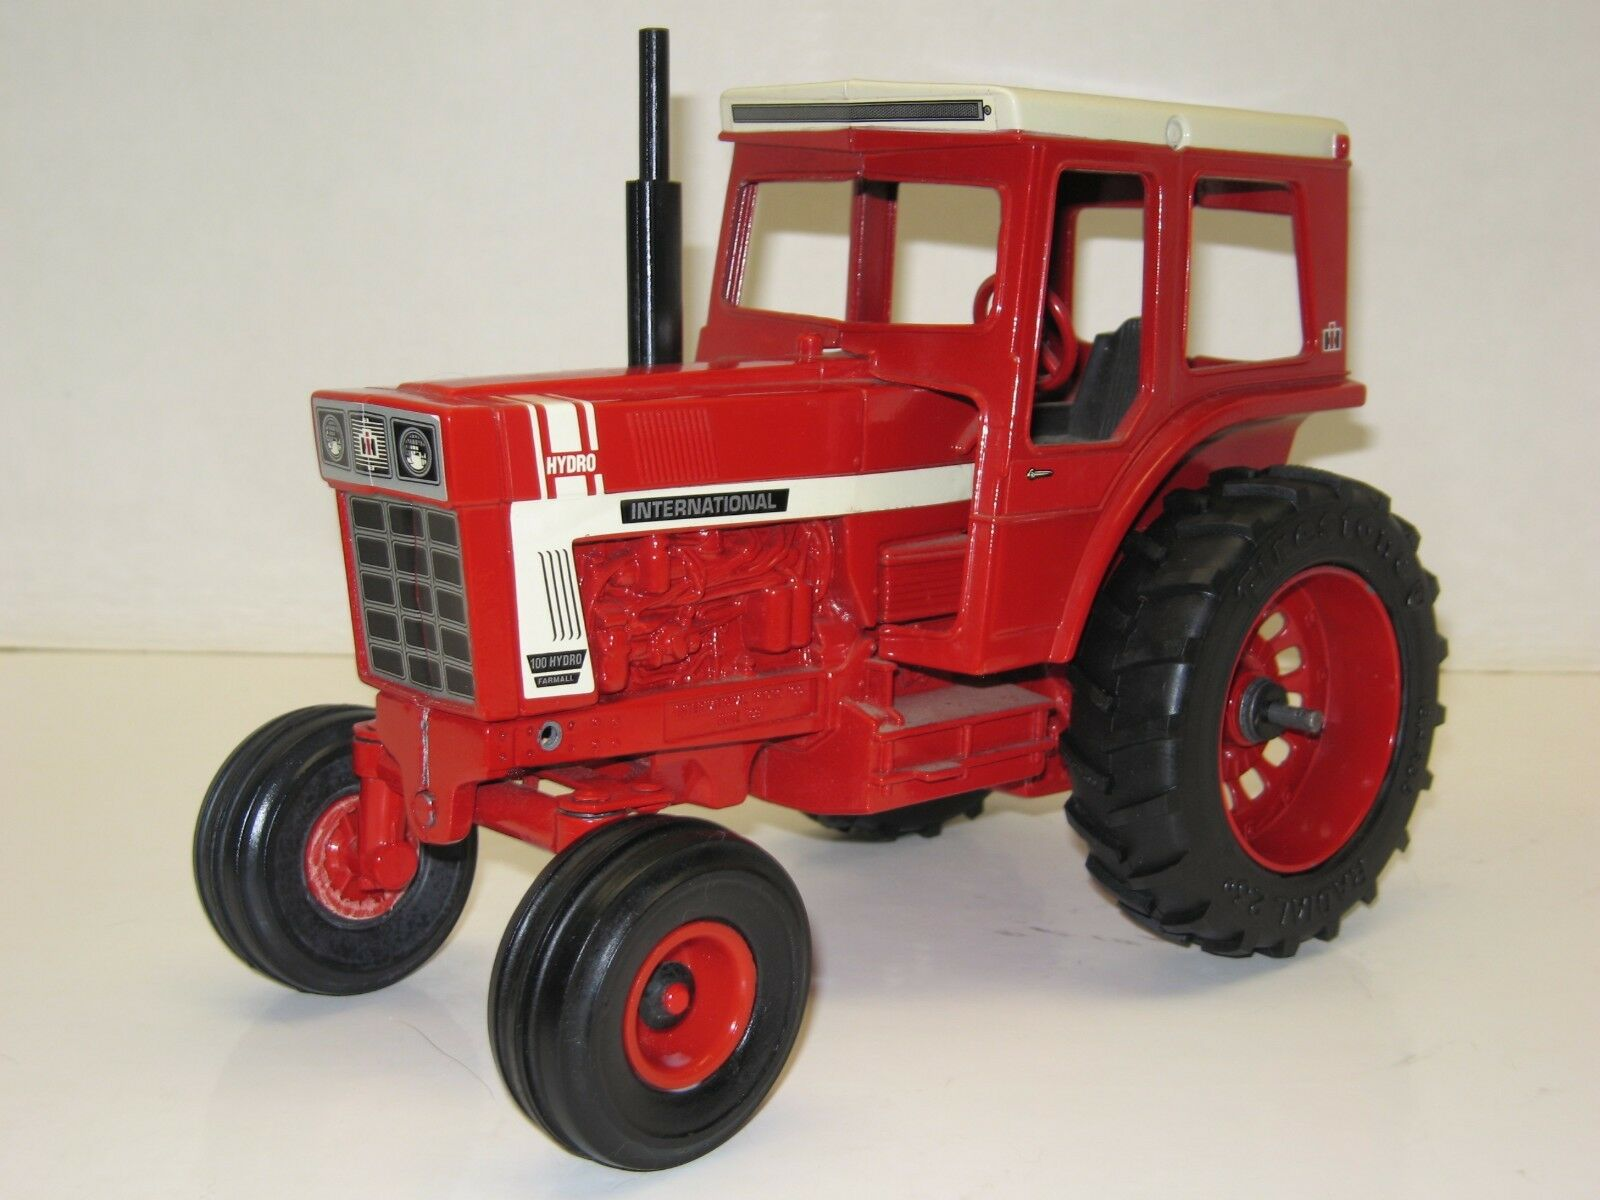 1 16 INTERNATIONAL HARVESTER 100 HYDRO NO BOX free shipping